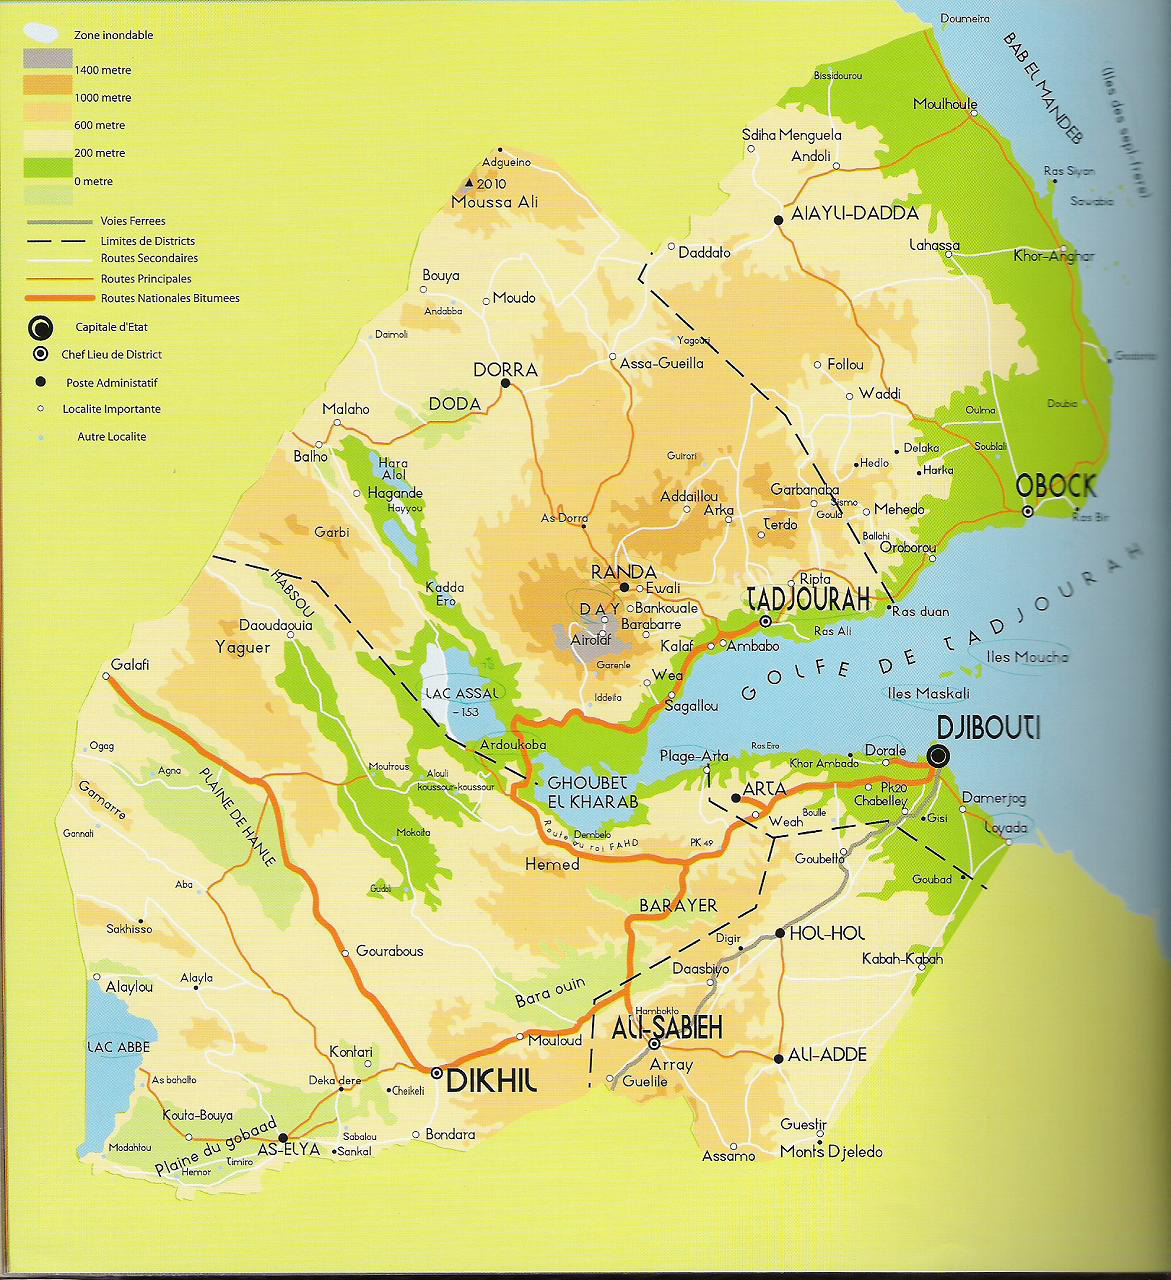 Detailed Elevation Map Of Djibouti With Roads And Cities - Djibouti map